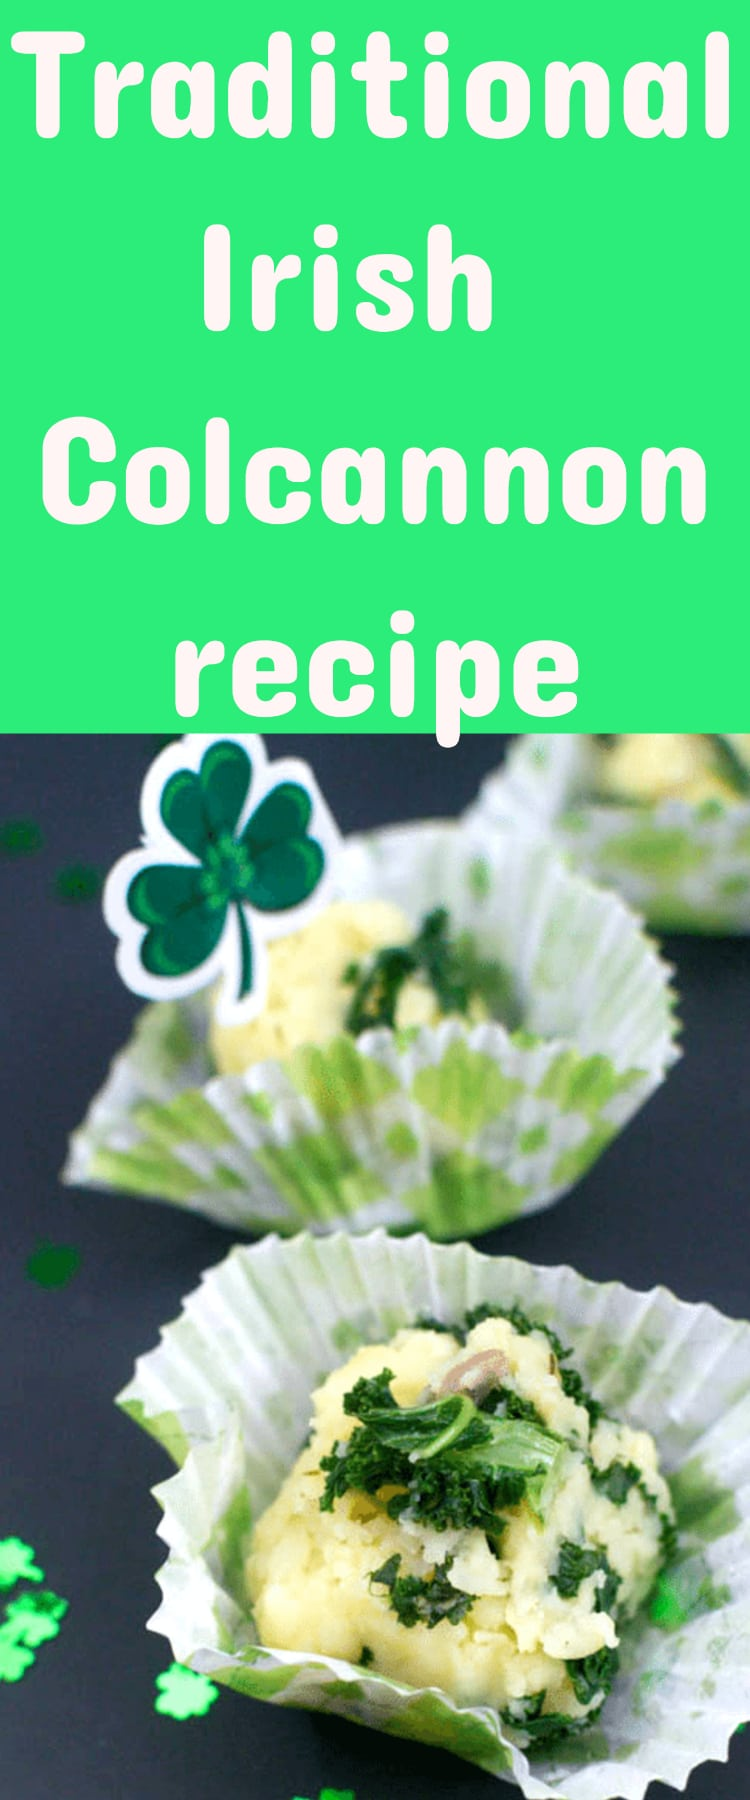 Irish recipes / recipes for st. patrick's day / colcannon / irish colcannon / potatoes / kale and potatoes #stpatricksday #irish